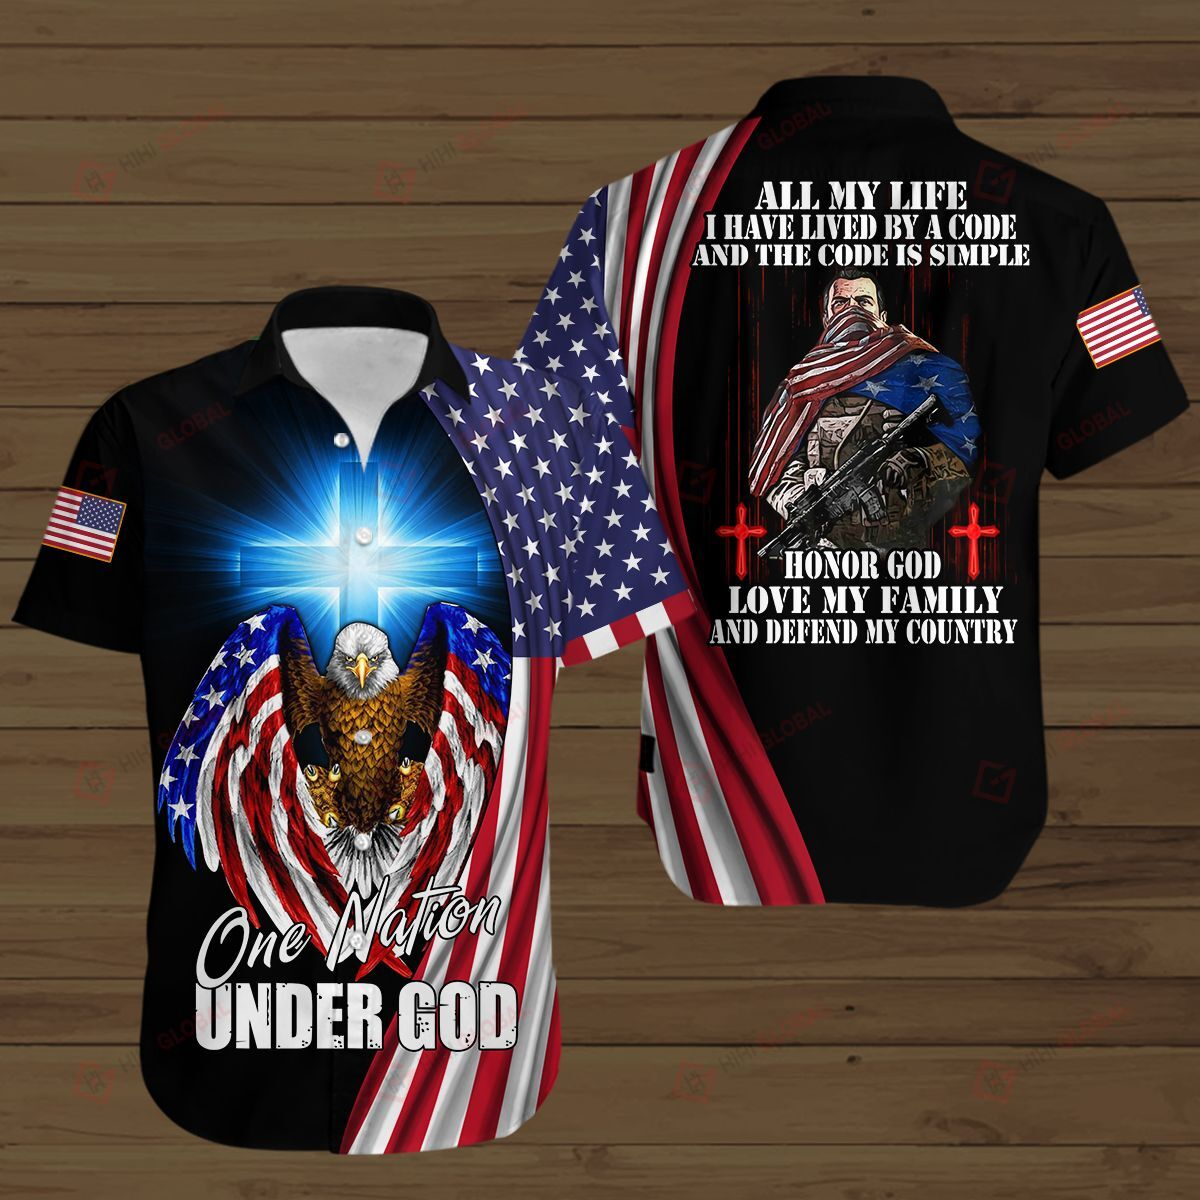 One Nation Under God American Soldier Lived By a Code and Code is Simple 3D Shirt